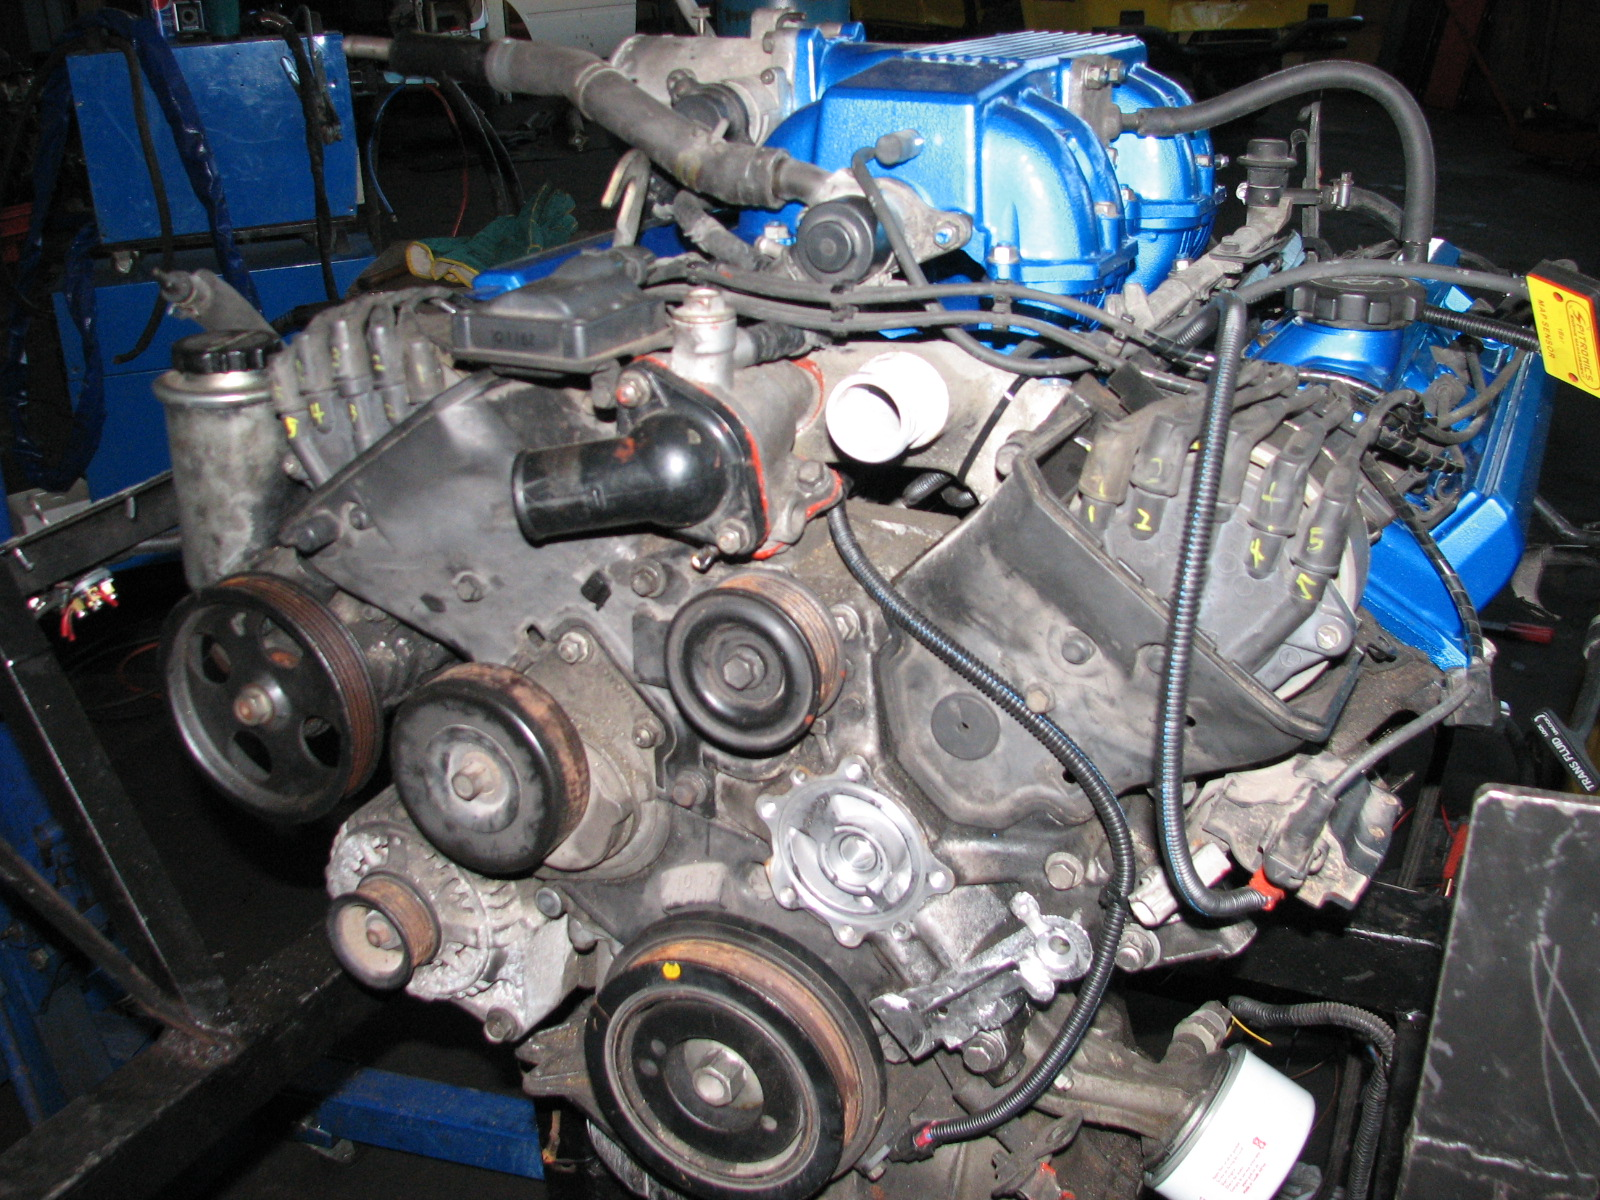 Lexus V8 Engine And Gearbox With Ecu And Tcu Complete Started ...